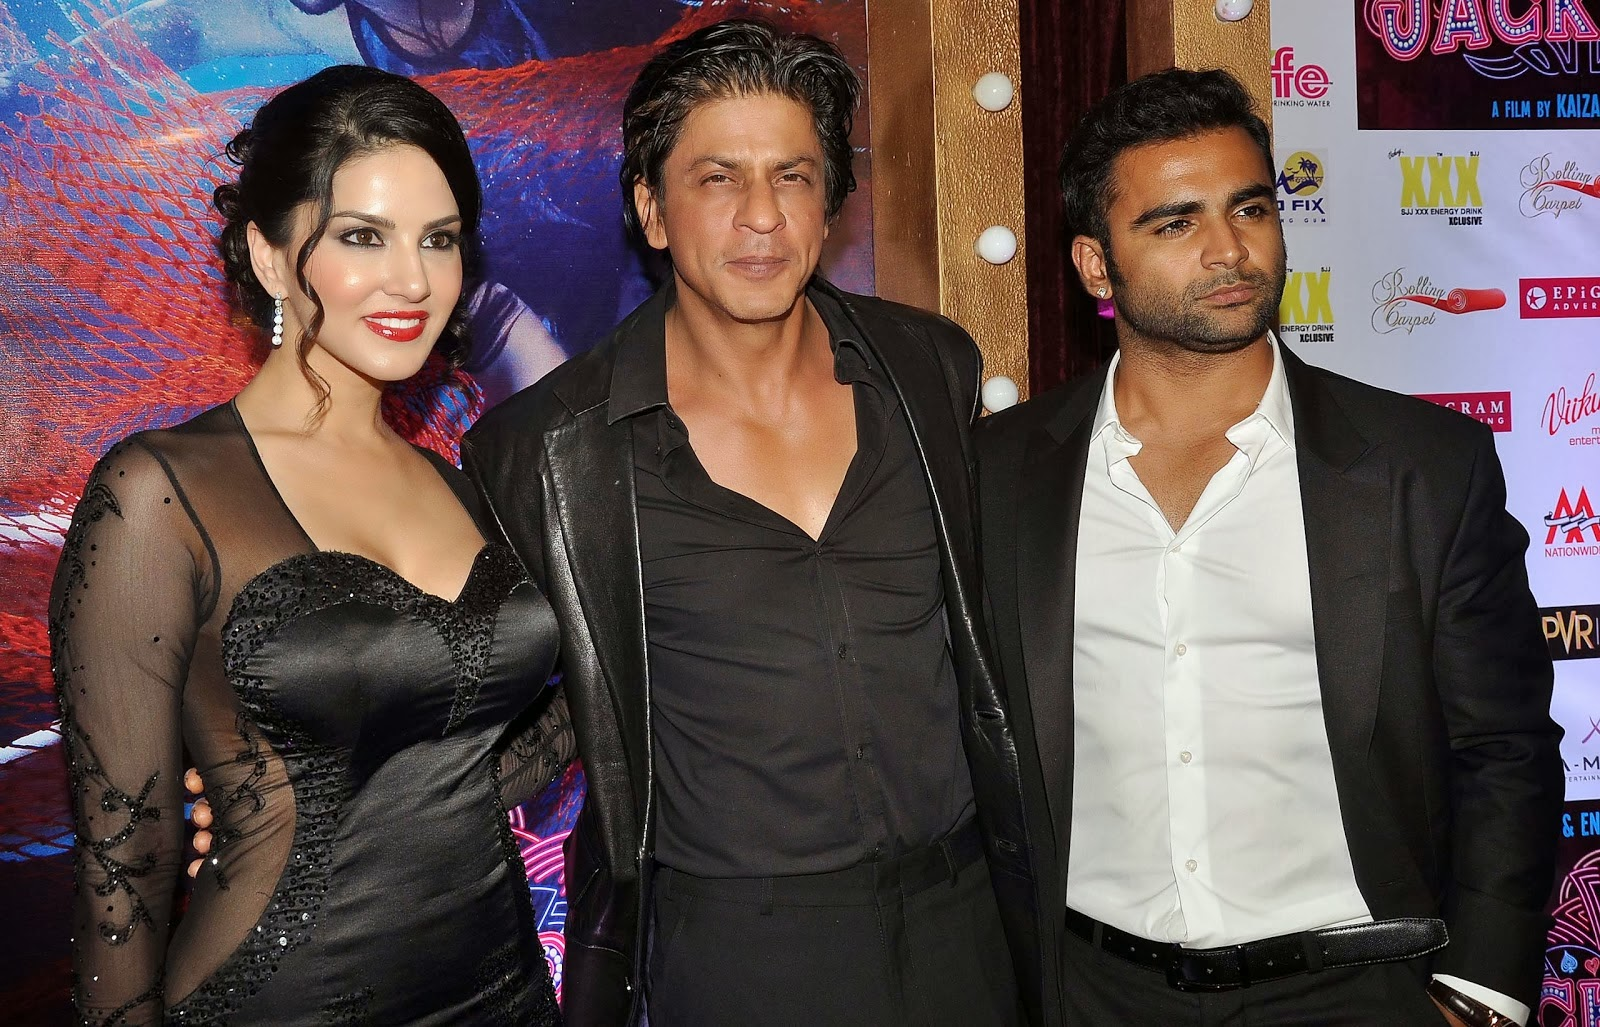 Photos of Sunny Leone with SRK